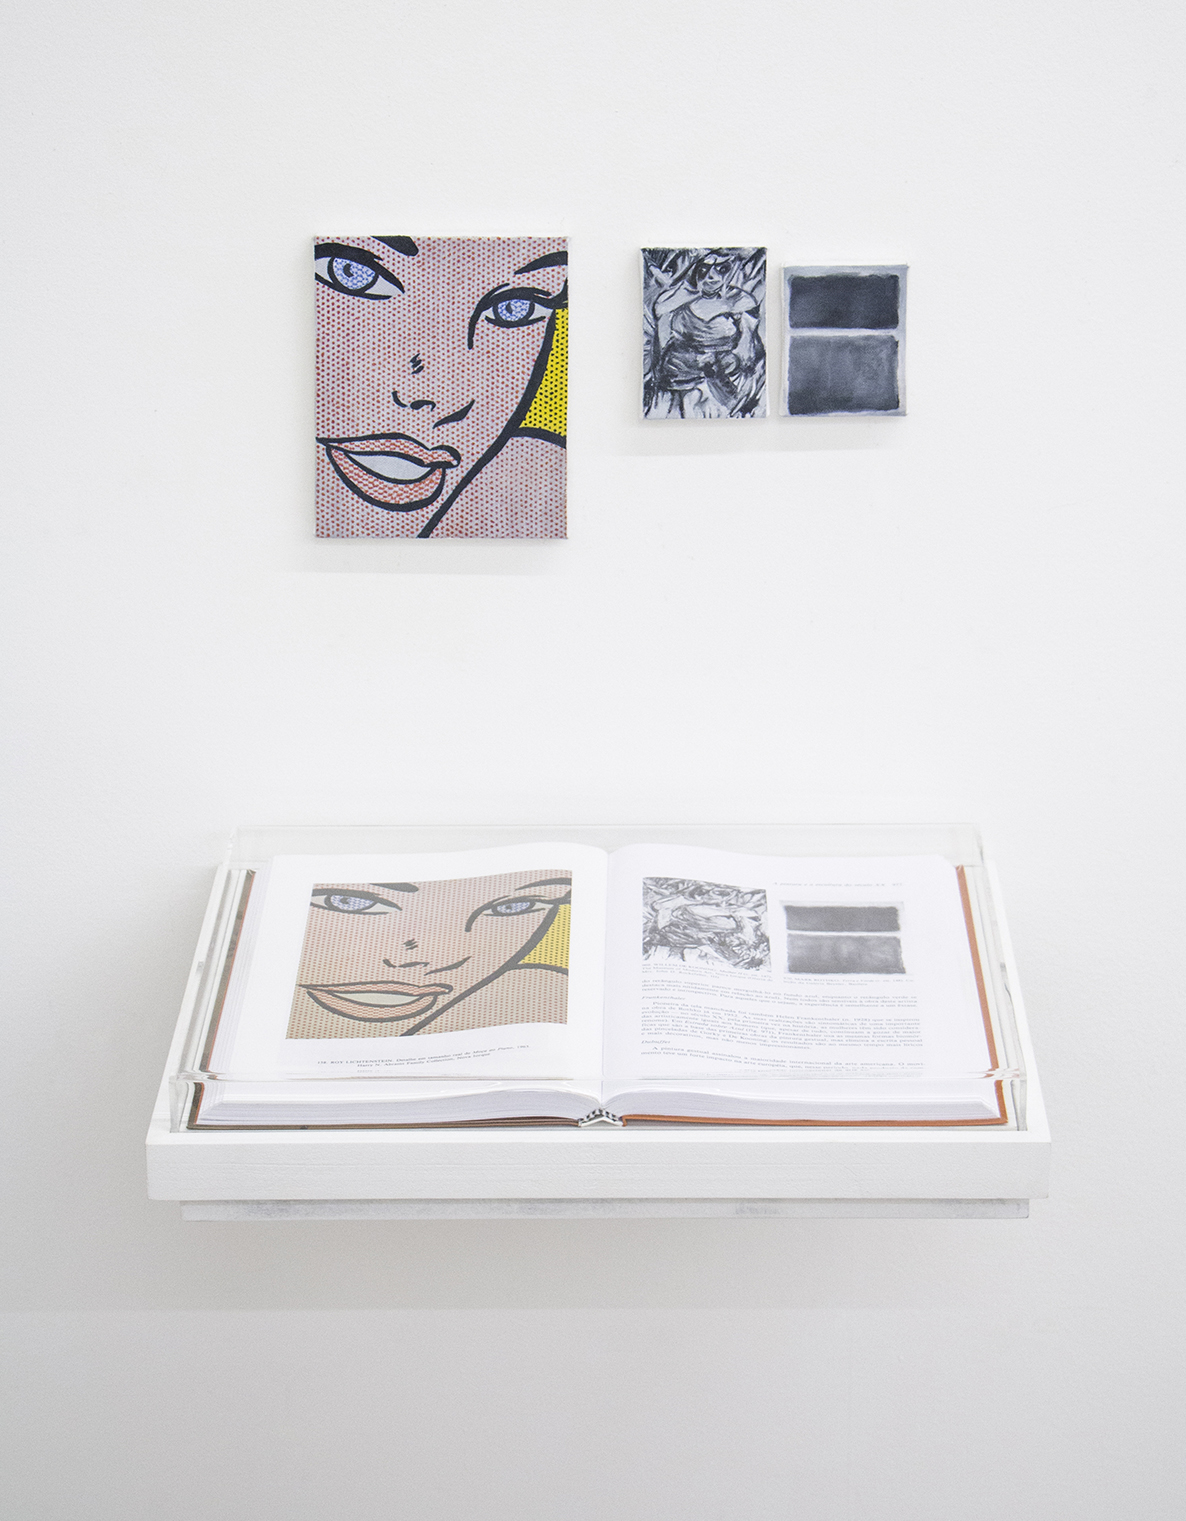 Pages 976 and Unnumbered (  That's How I Was Taught series ) •2014 • Framed book, oil on canvas • 11.8 x 16.5in (book), 5.3 x 6.5 in, 2.55 x 3.65 in, 2.55 x 3.2 in